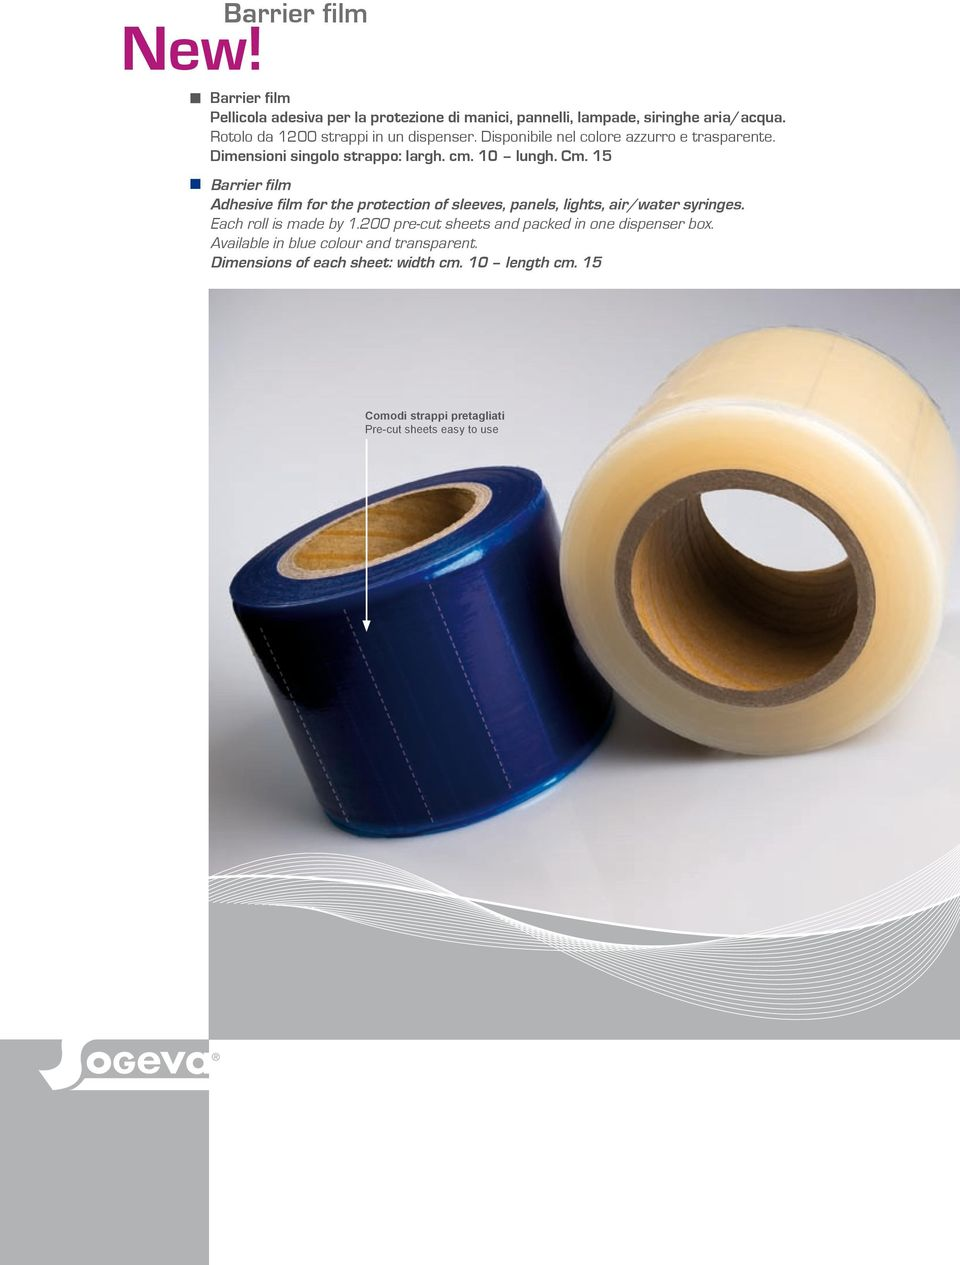 15 Barrier film Adhesive film for the protection of sleeves, panels, lights, air/water syringes. Each roll is made by 1.